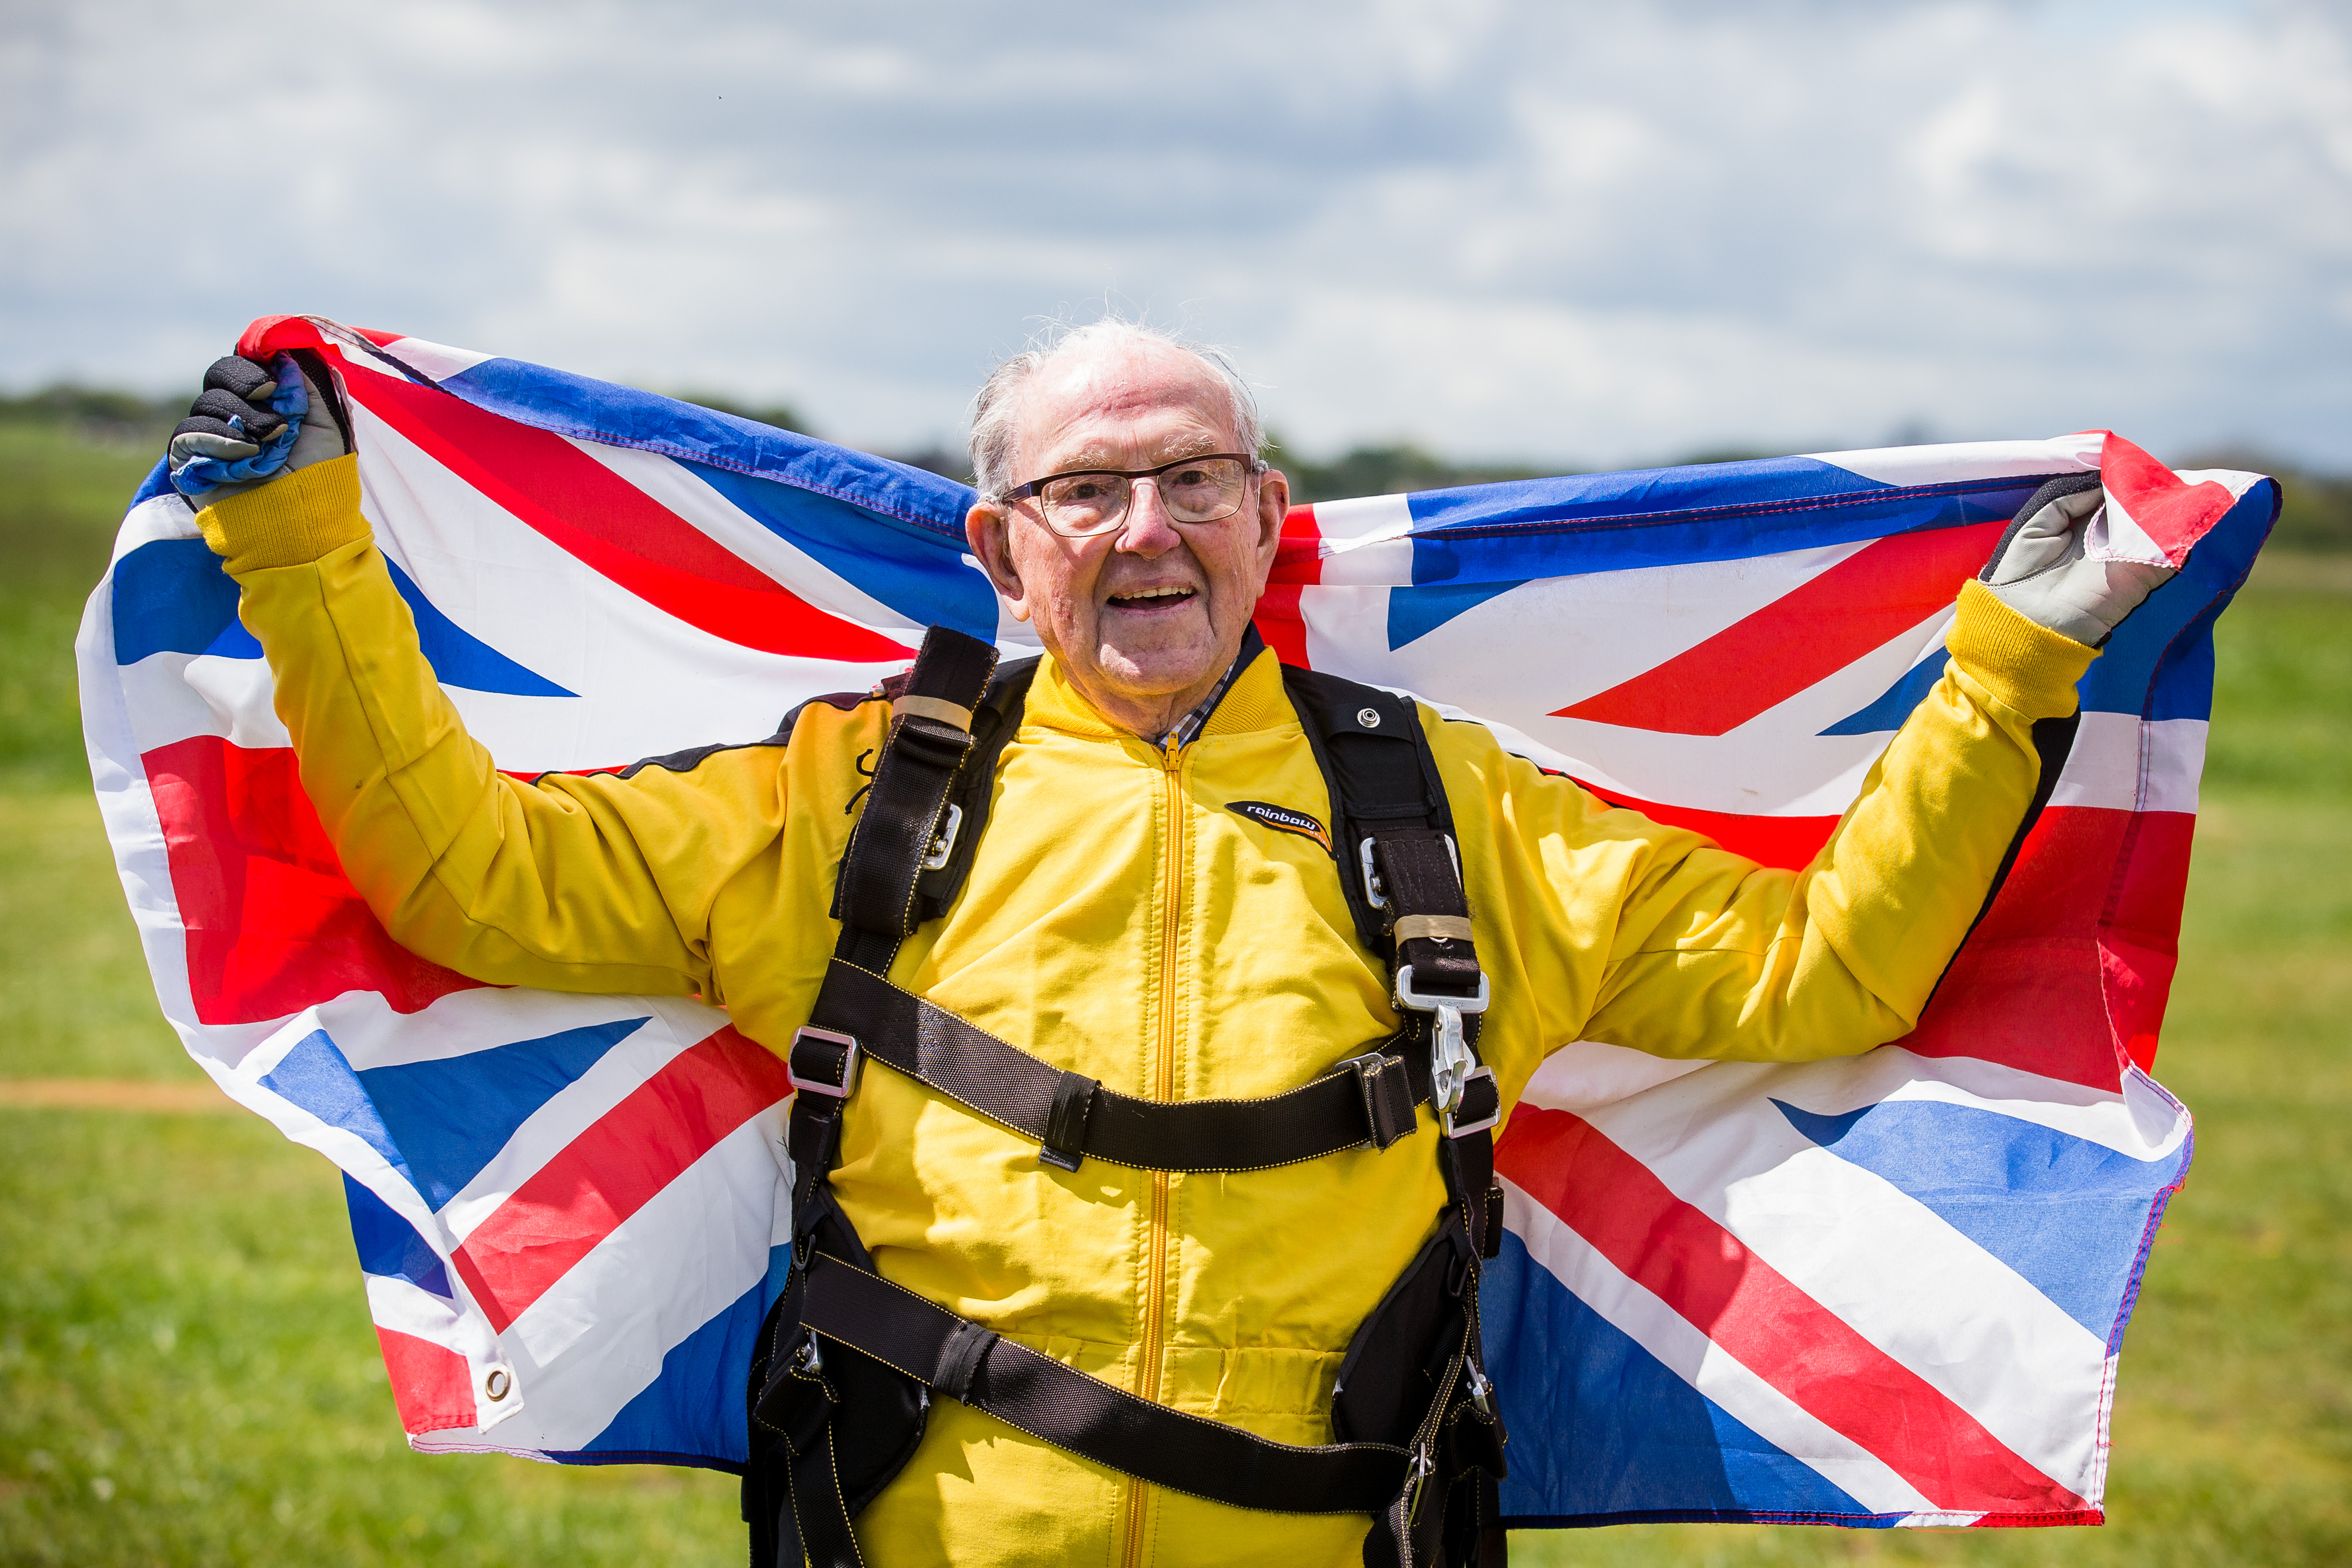 101-Year-Old Sky Diver